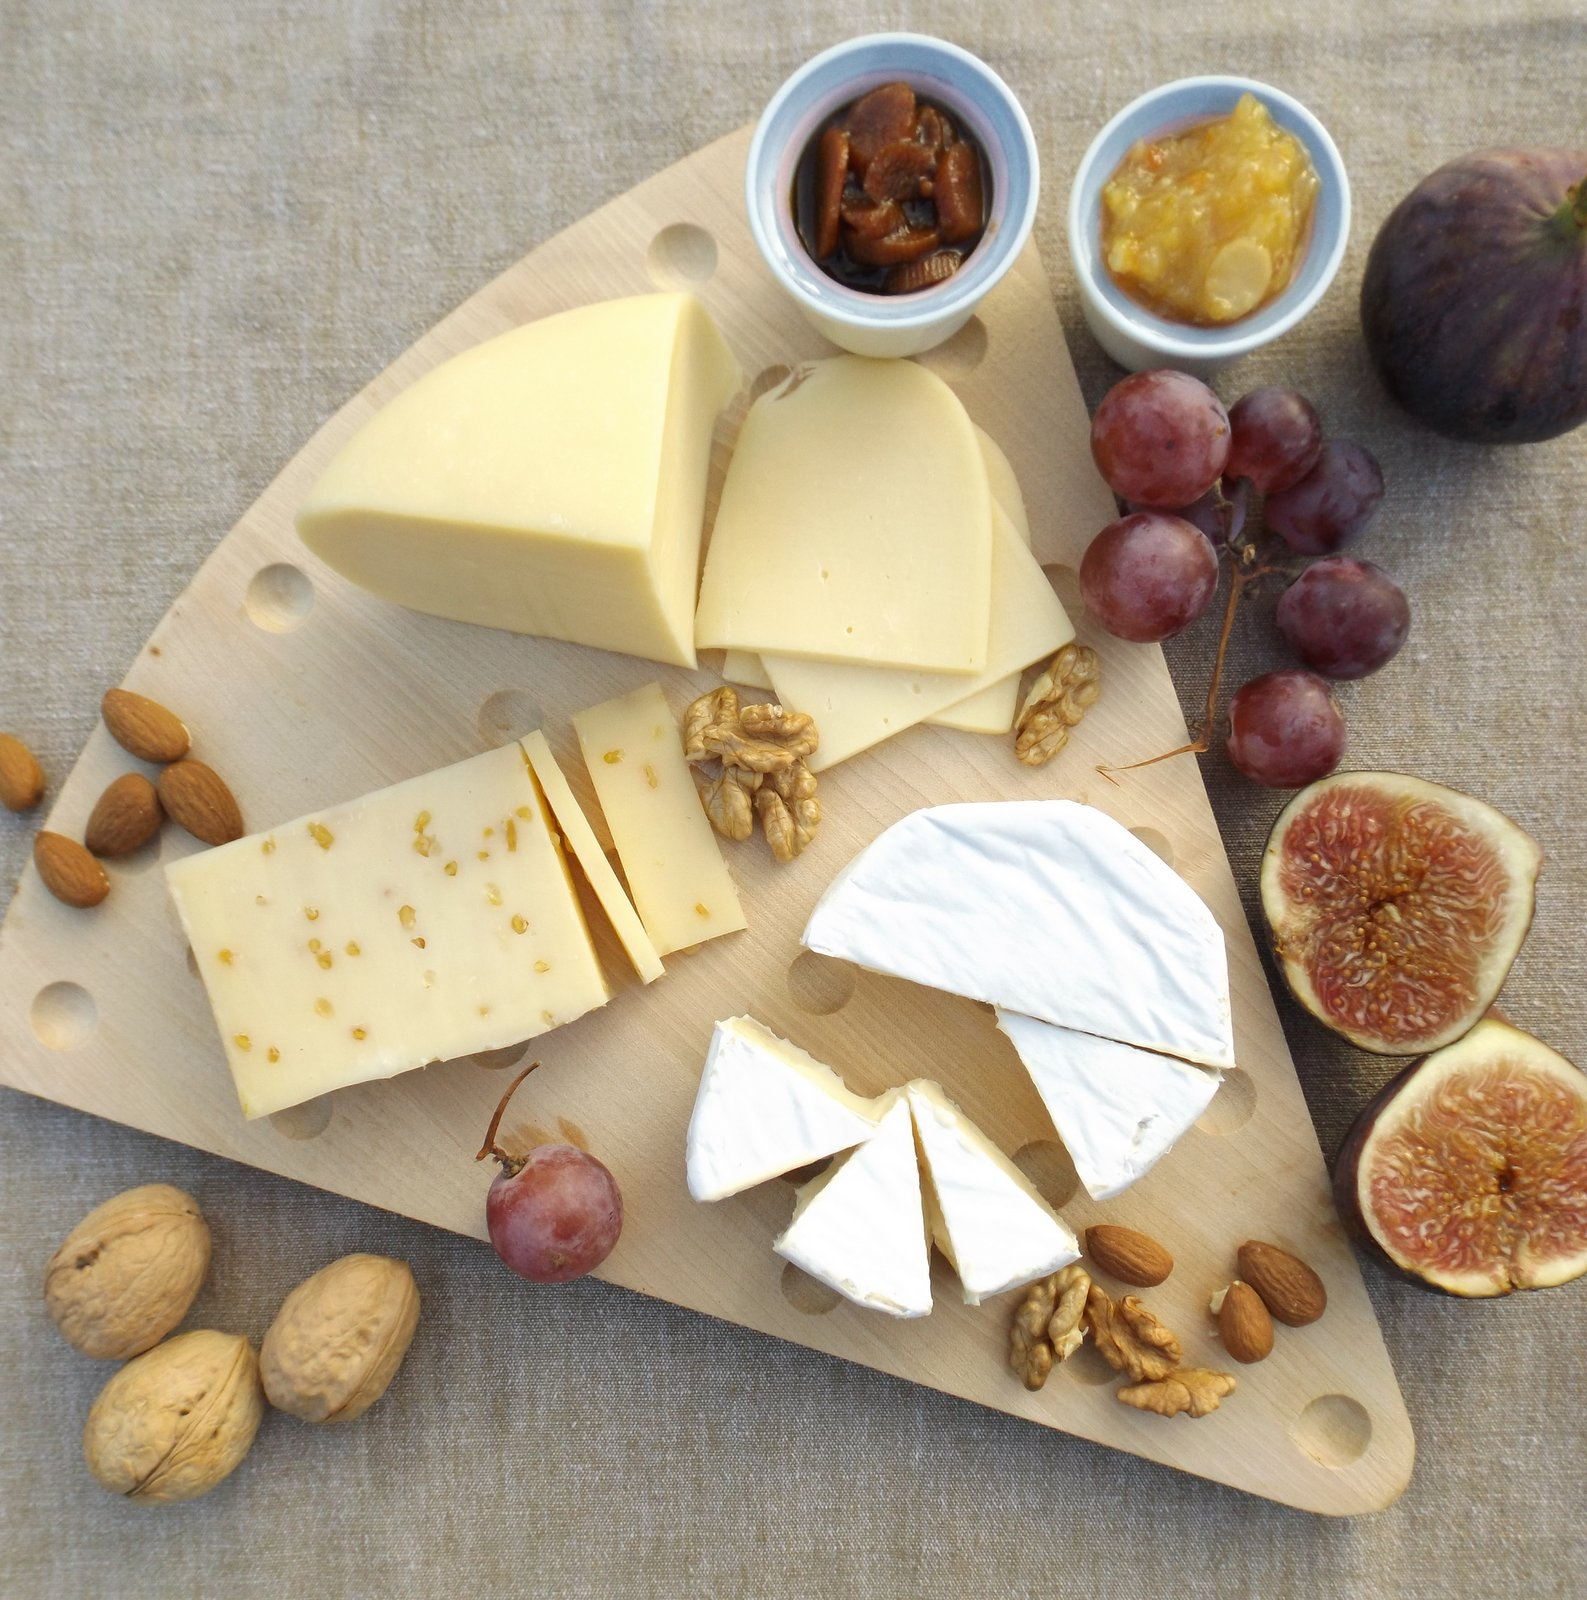 Assorted_Cheese_Platter_Served_With_Fruits_Crackers.jpg